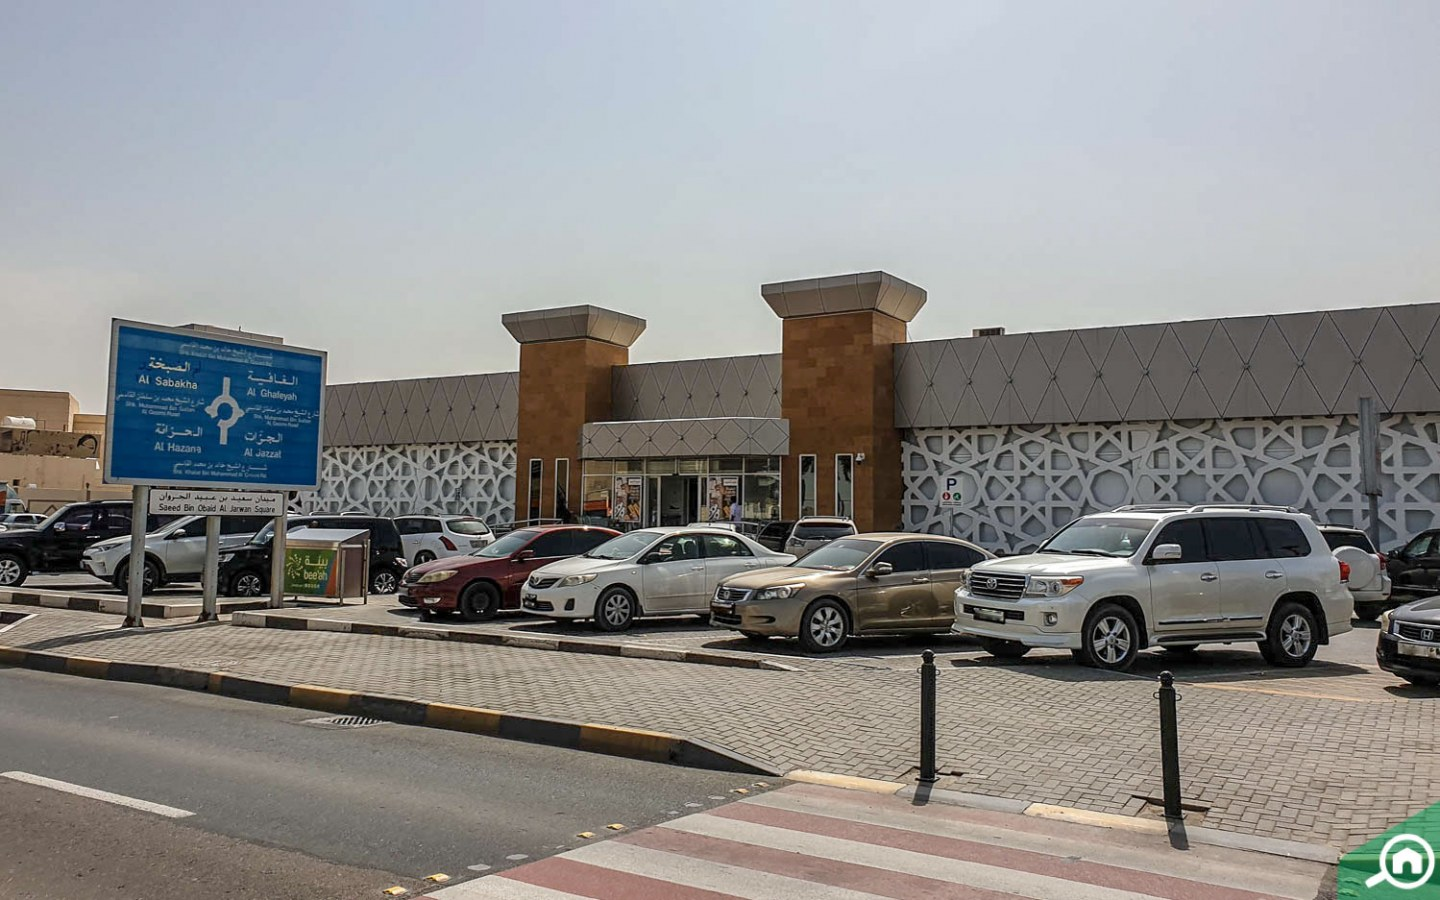 Parking spaces in Al Sabkha